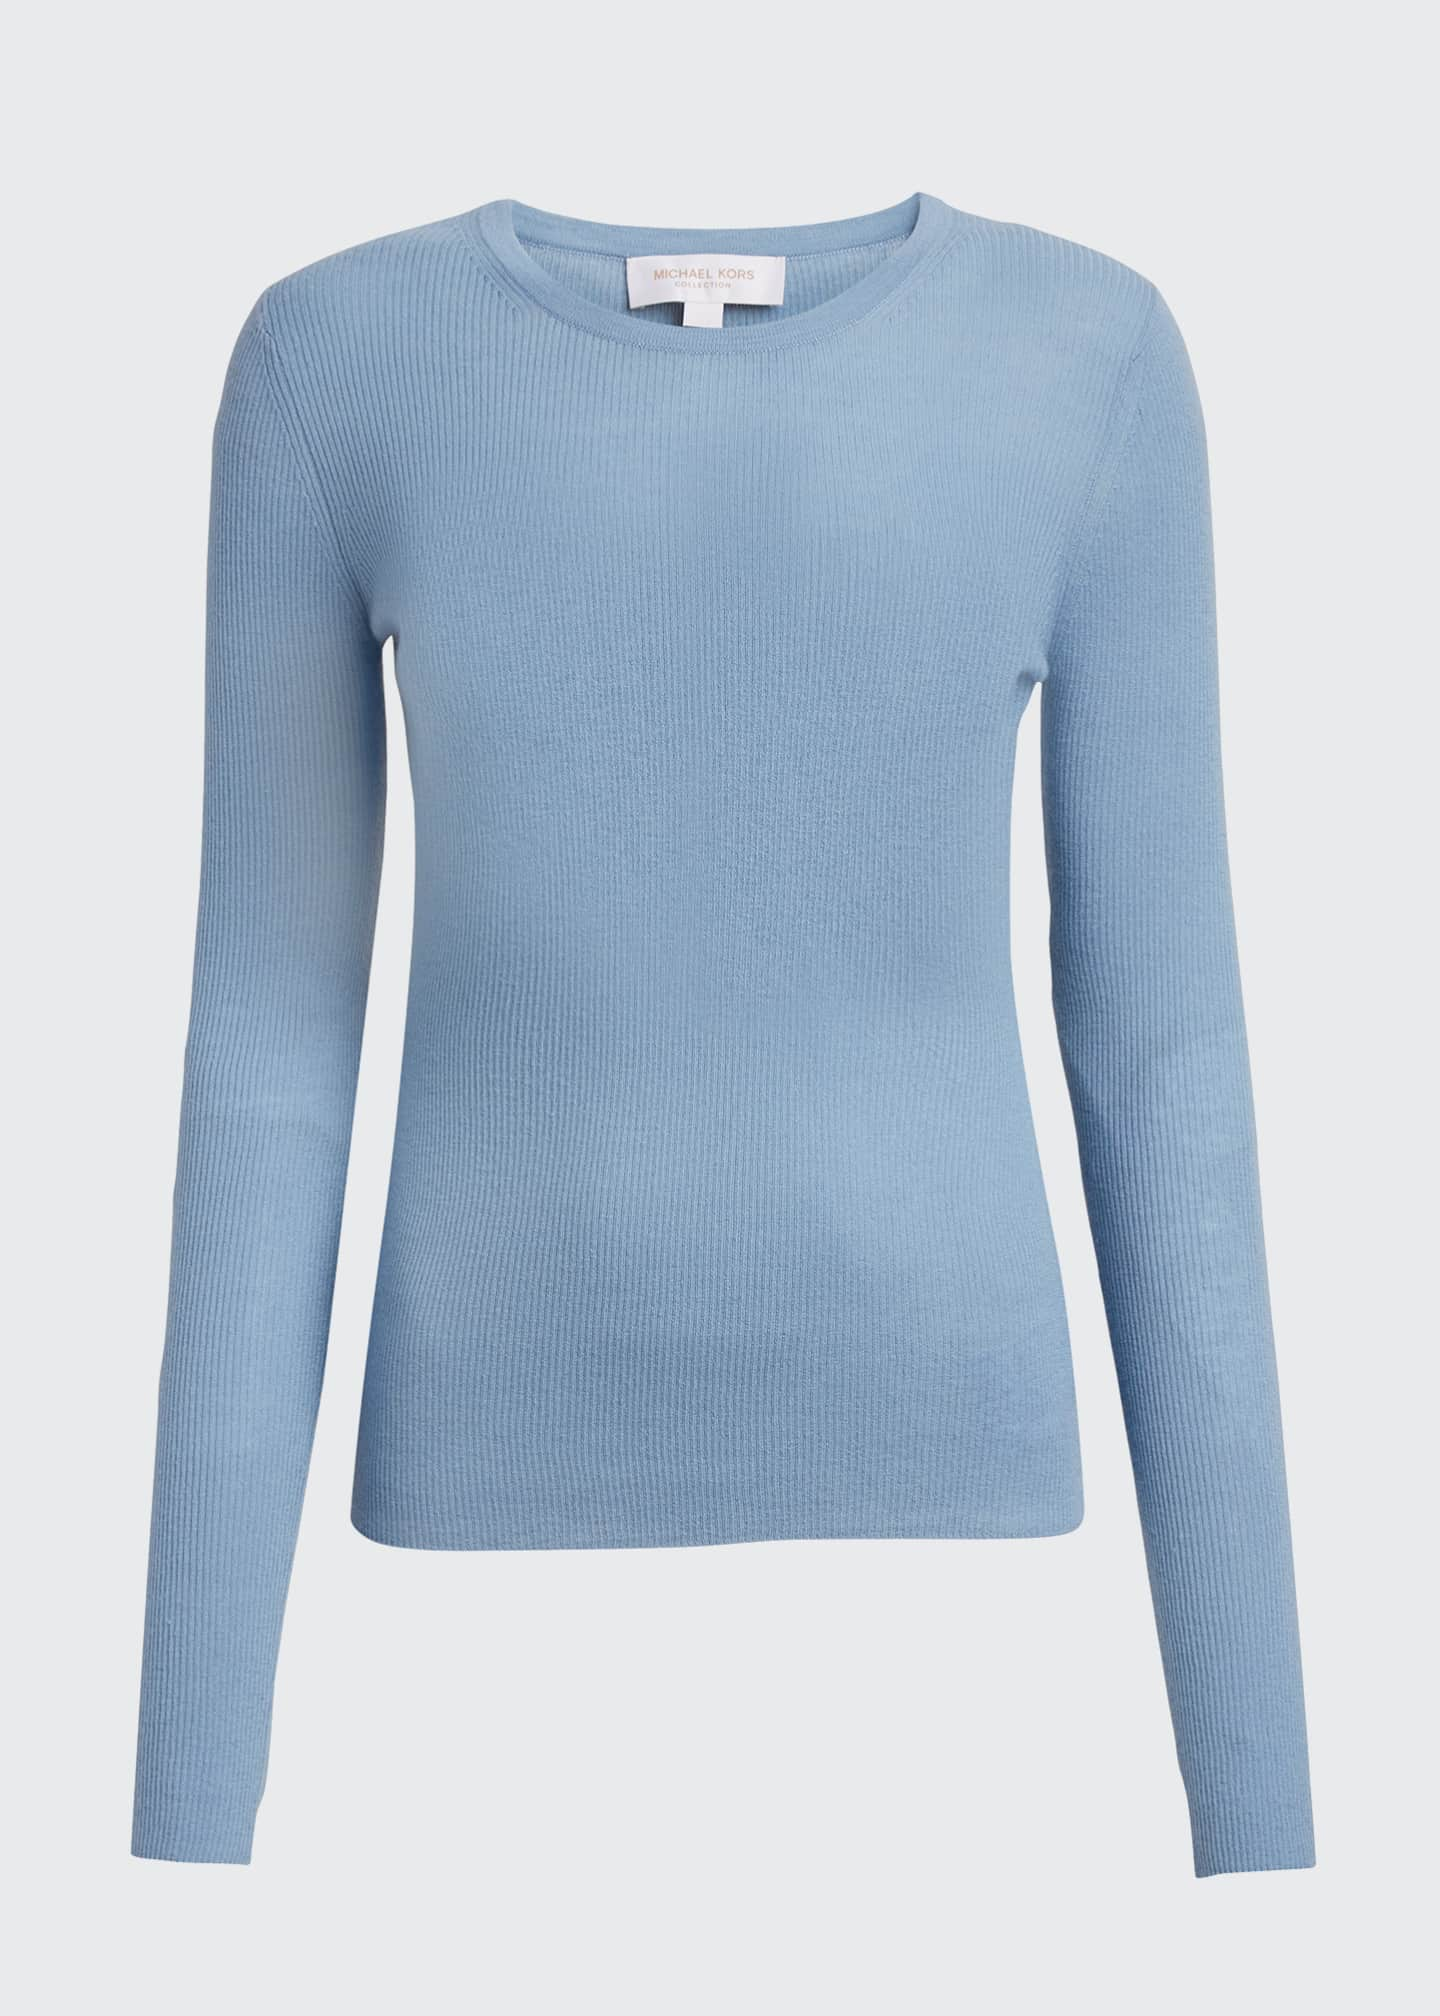 Image 5 of 5: Featherweight Cashmere Sweater